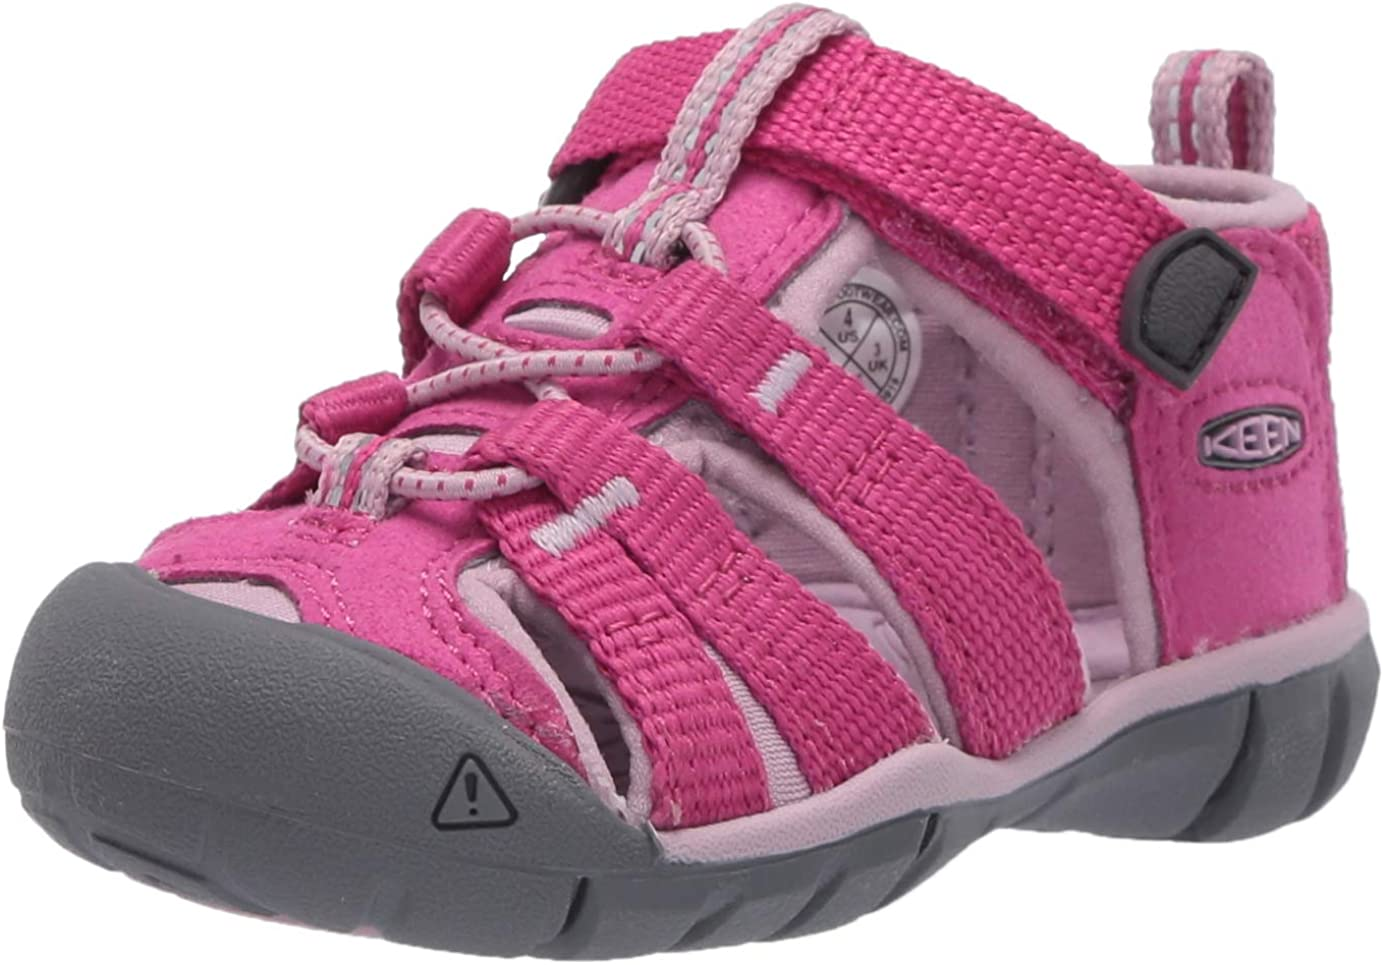 KEEN Toddler's Seacamp 2 CNX Closed Toe Sandal, Very Berry/Dawn Pink, 4 T (Toddler's) US